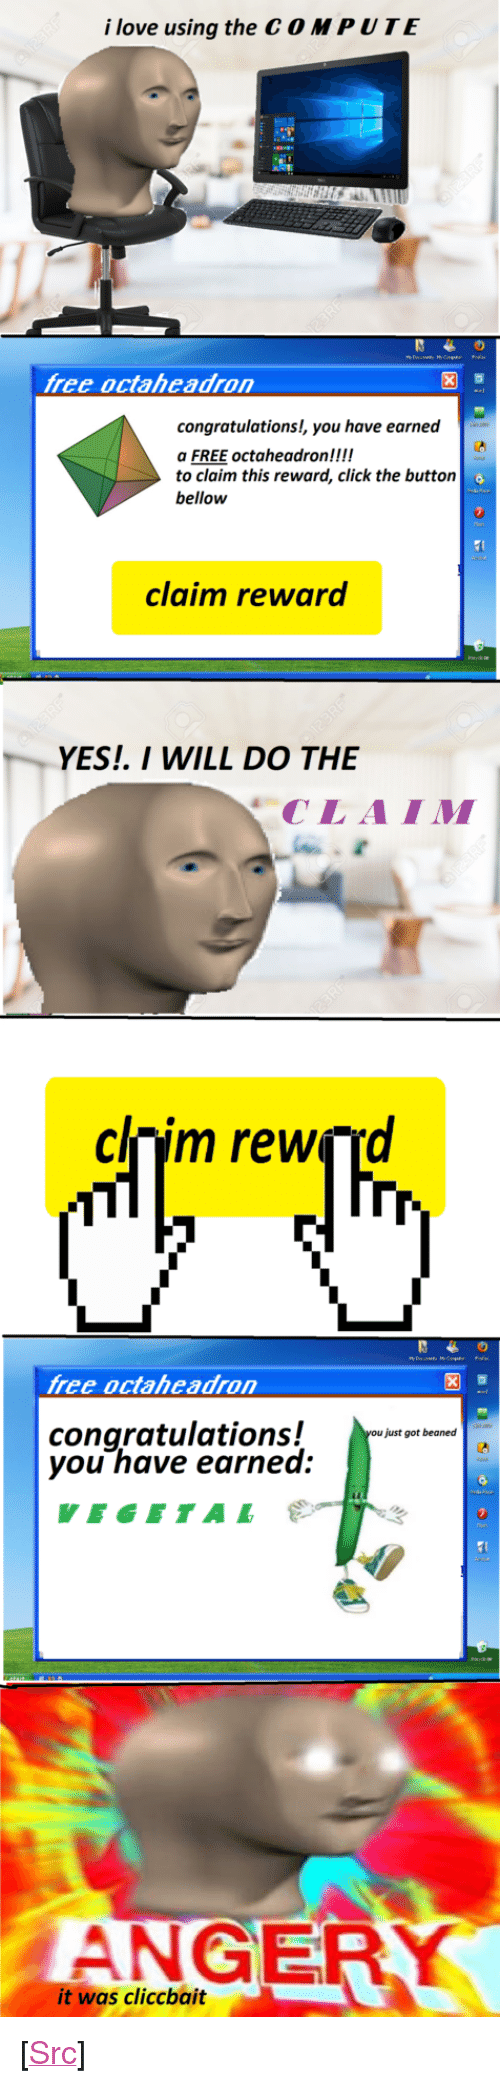 """Click, Love, and Reddit: i love using the C O MPUTE  free octaheadron  congratulations!, you have earned  a FREE  to claim this reward, click the buttorn  bellow  octaheadronck the button  claim reward  YES. I WILL DO THE  CLAIM  clnim rewçrd  free octaheadron  congratulations!  you have earned  just got beaned  VEGETAL  ANGER  it was cliccbait <p>[<a href=""""https://www.reddit.com/r/surrealmemes/comments/7yelgb/clickbait/"""">Src</a>]</p>"""